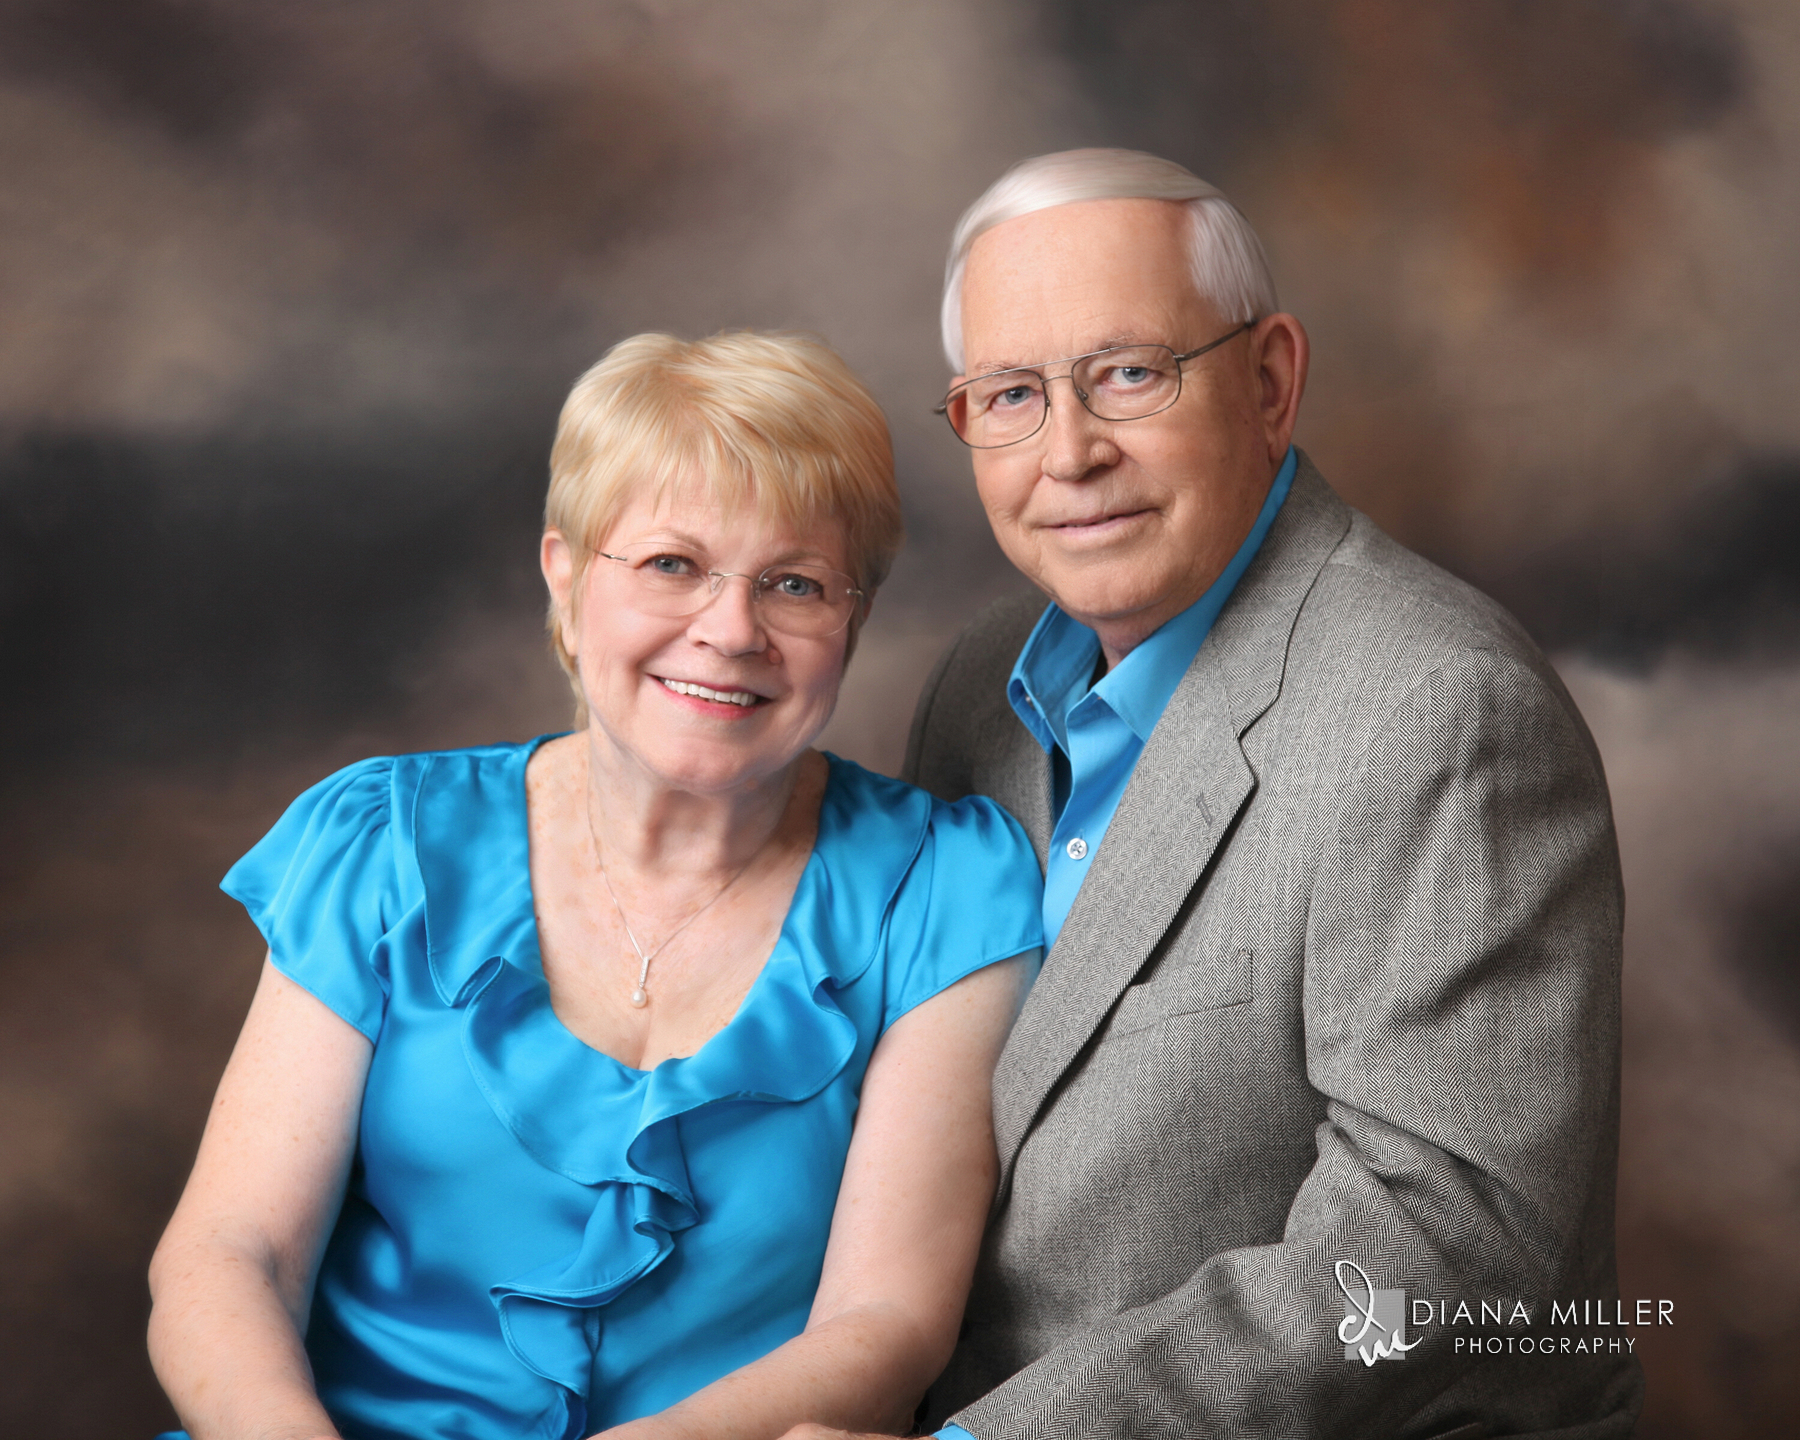 A studio portrait of a senior citizen couple.